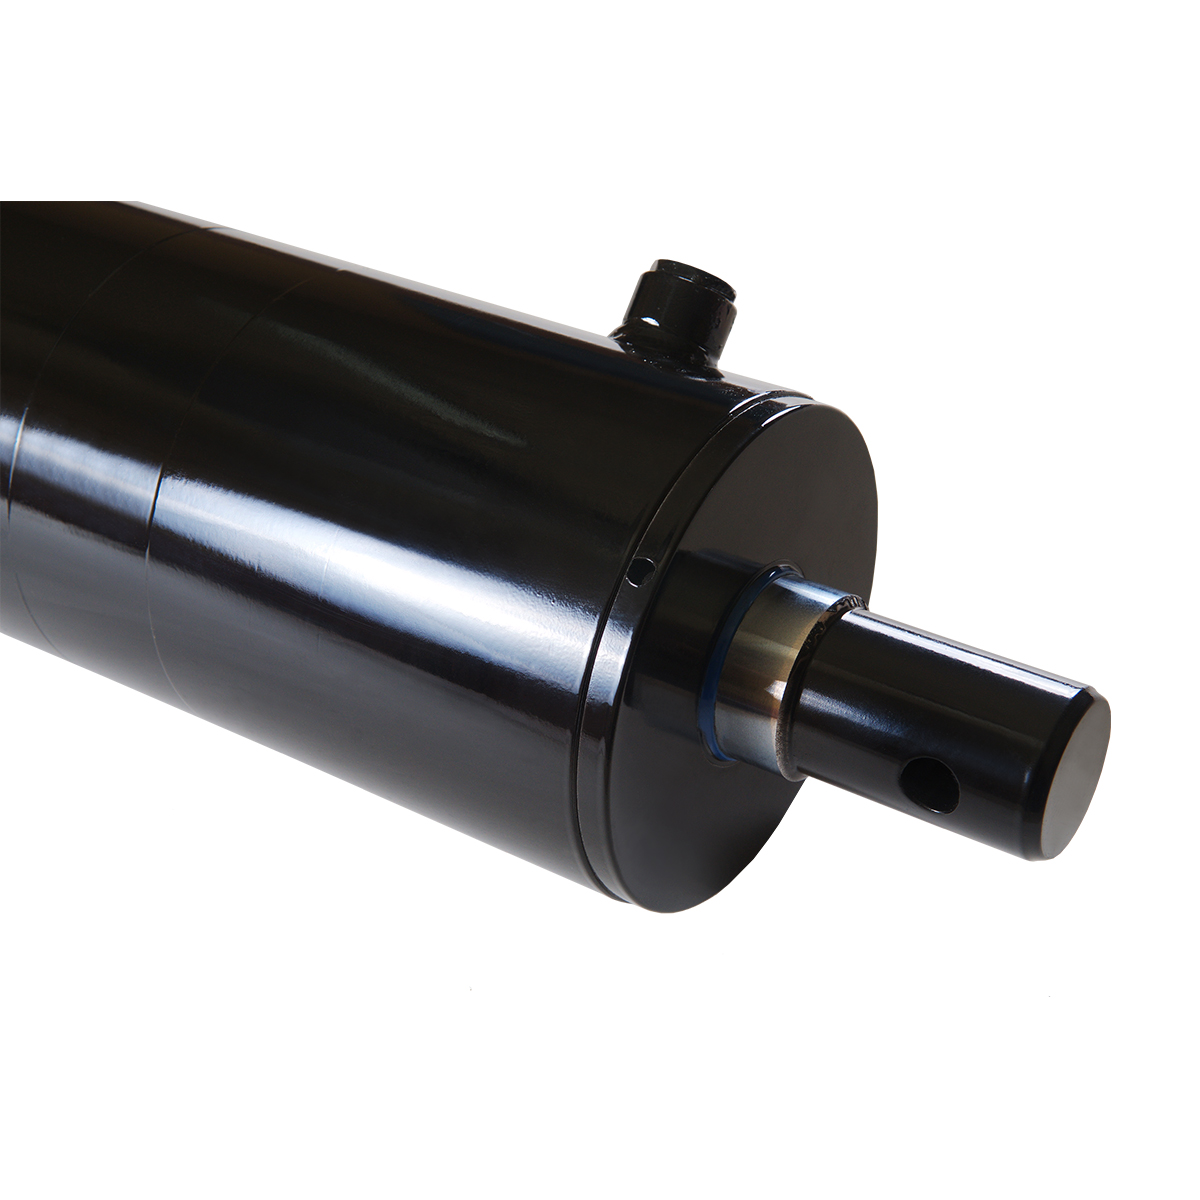 5 bore x 24 stroke hydraulic cylinder, log splitter double acting cylinder | Magister Hydraulics